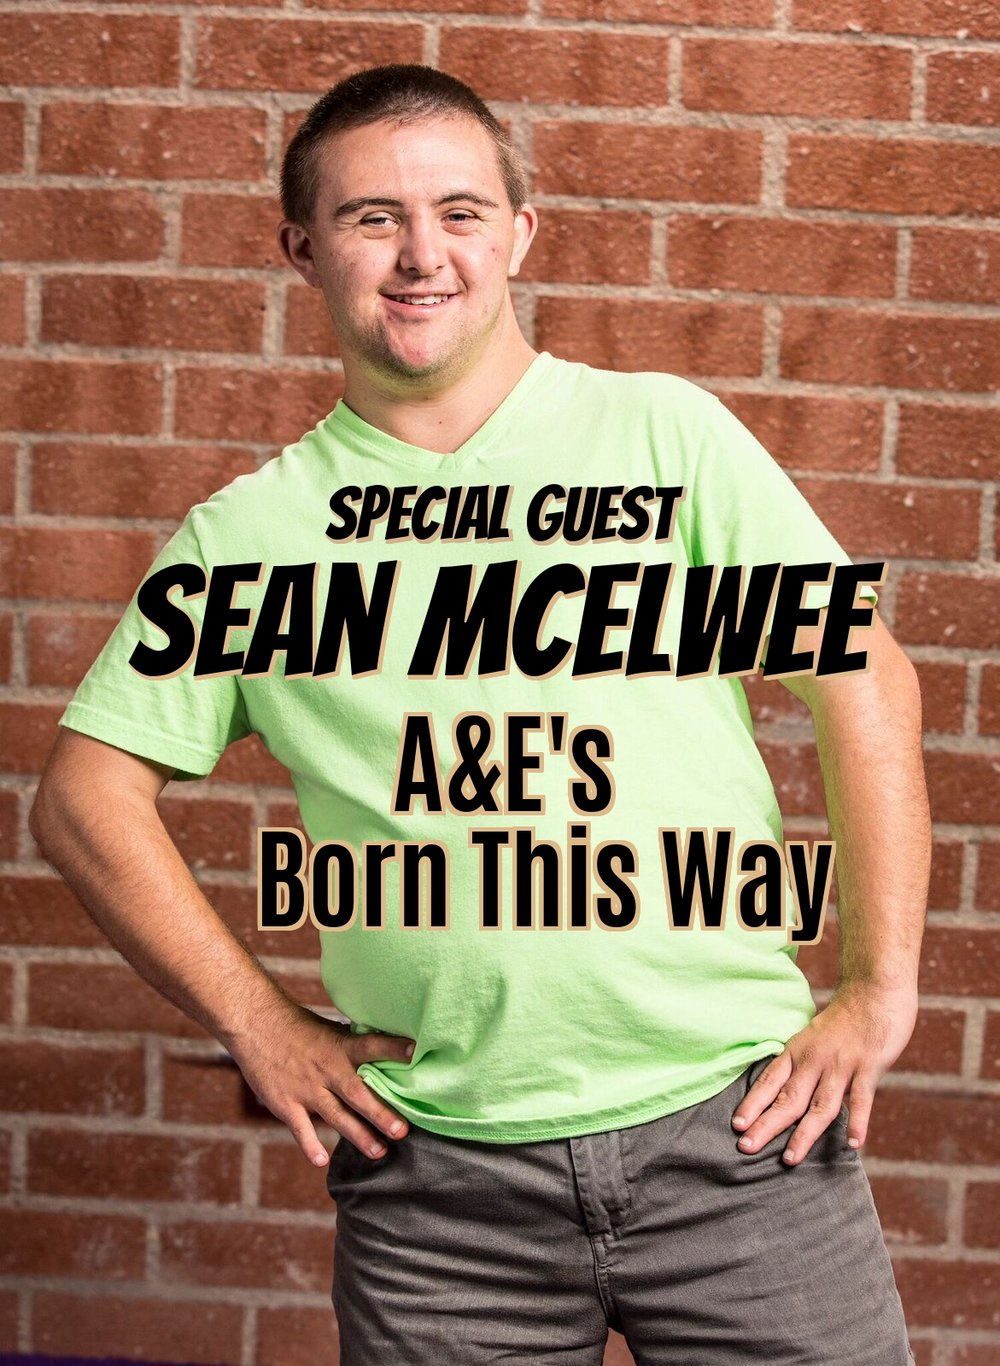 "We are thrilled to have  Sean McElwee,  cast member from A&E's critically acclaimed and Emmy Award Winning Reality Show,   Born This Way   at the 2017 Race4Respect        0   0   1   2   GM Ryan, International   1   1   2   14.0                       Normal   0           false   false   false     EN-US   JA   X-NONE                                                                                                                                                                                                                                                                                                                                                                               /* Style Definitions */ table.MsoNormalTable 	{mso-style-name:""Table Normal""; 	mso-tstyle-rowband-size:0; 	mso-tstyle-colband-size:0; 	mso-style-noshow:yes; 	mso-style-priority:99; 	mso-style-parent:""""; 	mso-padding-alt:0in 5.4pt 0in 5.4pt; 	mso-para-margin:0in; 	mso-para-margin-bottom:.0001pt; 	mso-pagination:widow-orphan; 	font-size:12.0pt; 	font-family:Cambria; 	mso-ascii-font-family:Cambria; 	mso-ascii-theme-font:minor-latin; 	mso-hansi-font-family:Cambria; 	mso-hansi-theme-font:minor-latin;}      ™!"